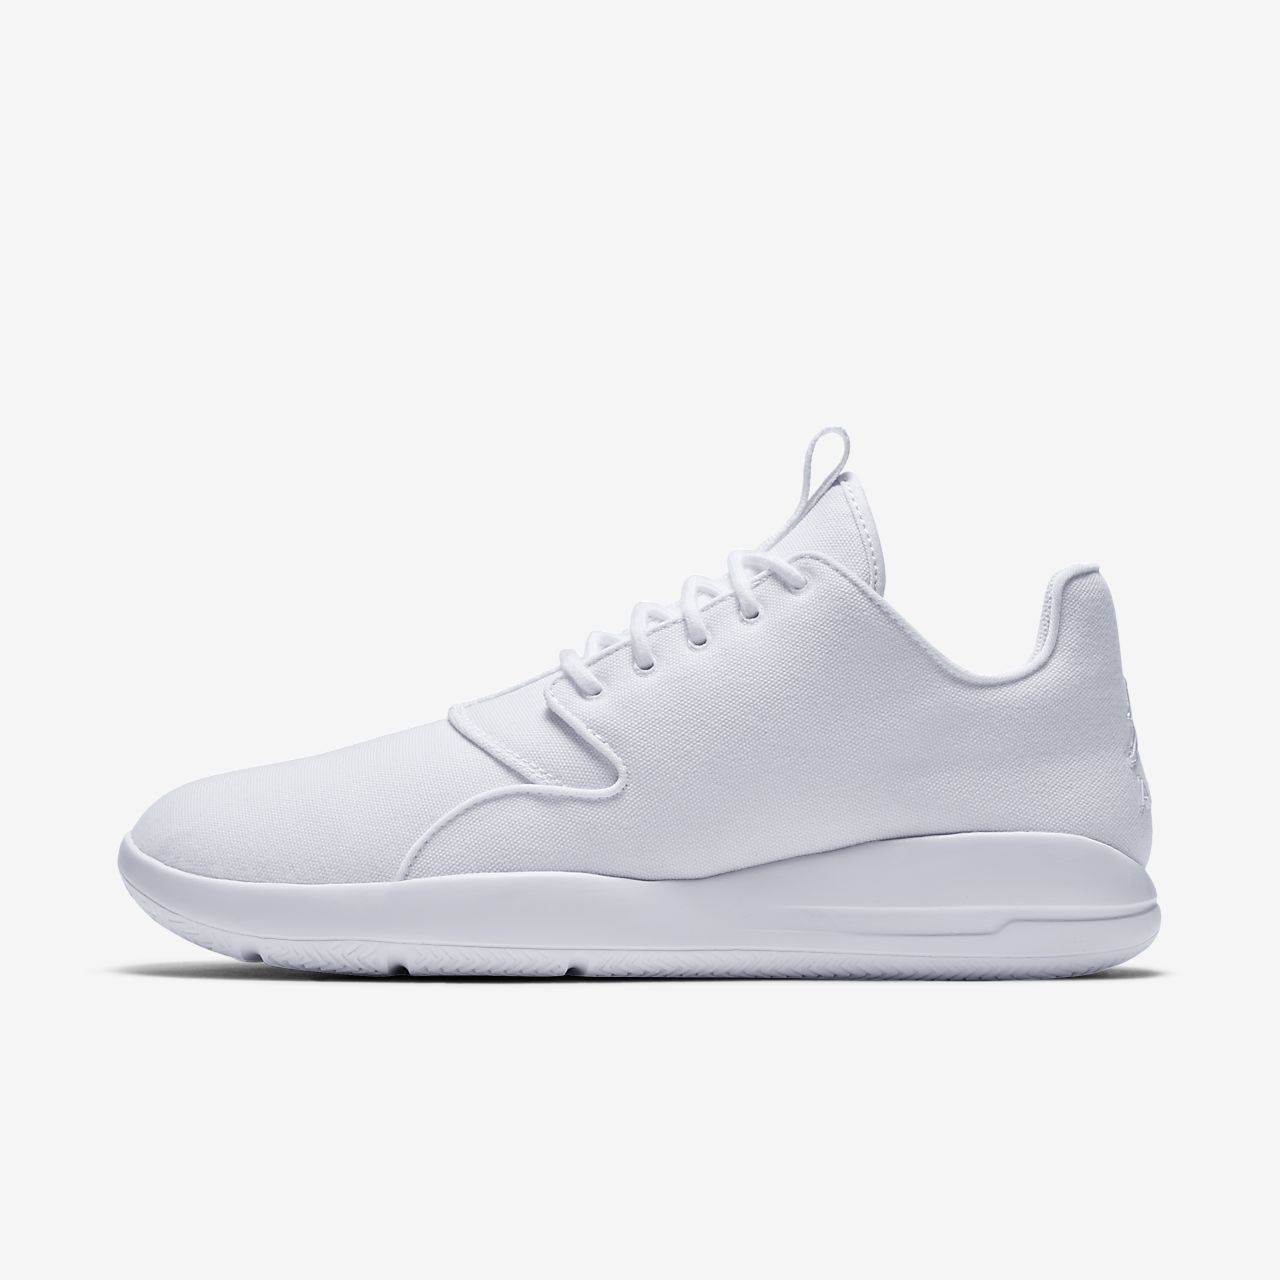 jordan eclipse white